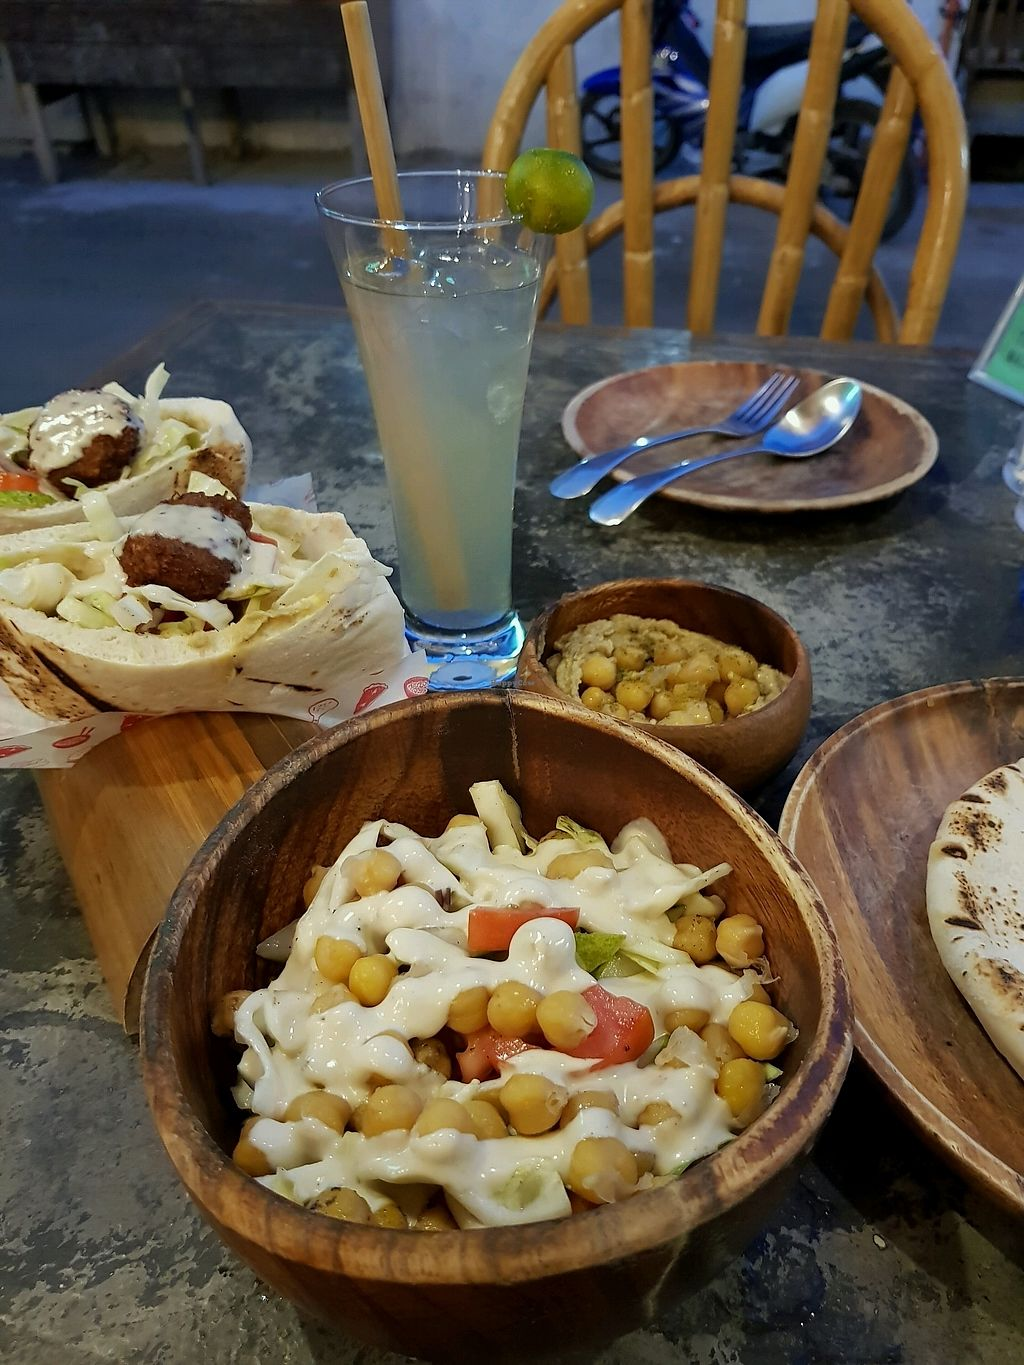 """Photo of Happiness Express  by <a href=""""/members/profile/zuckerzucker"""">zuckerzucker</a> <br/>happiness salad and falafel pita <br/> January 19, 2018  - <a href='/contact/abuse/image/88461/348267'>Report</a>"""